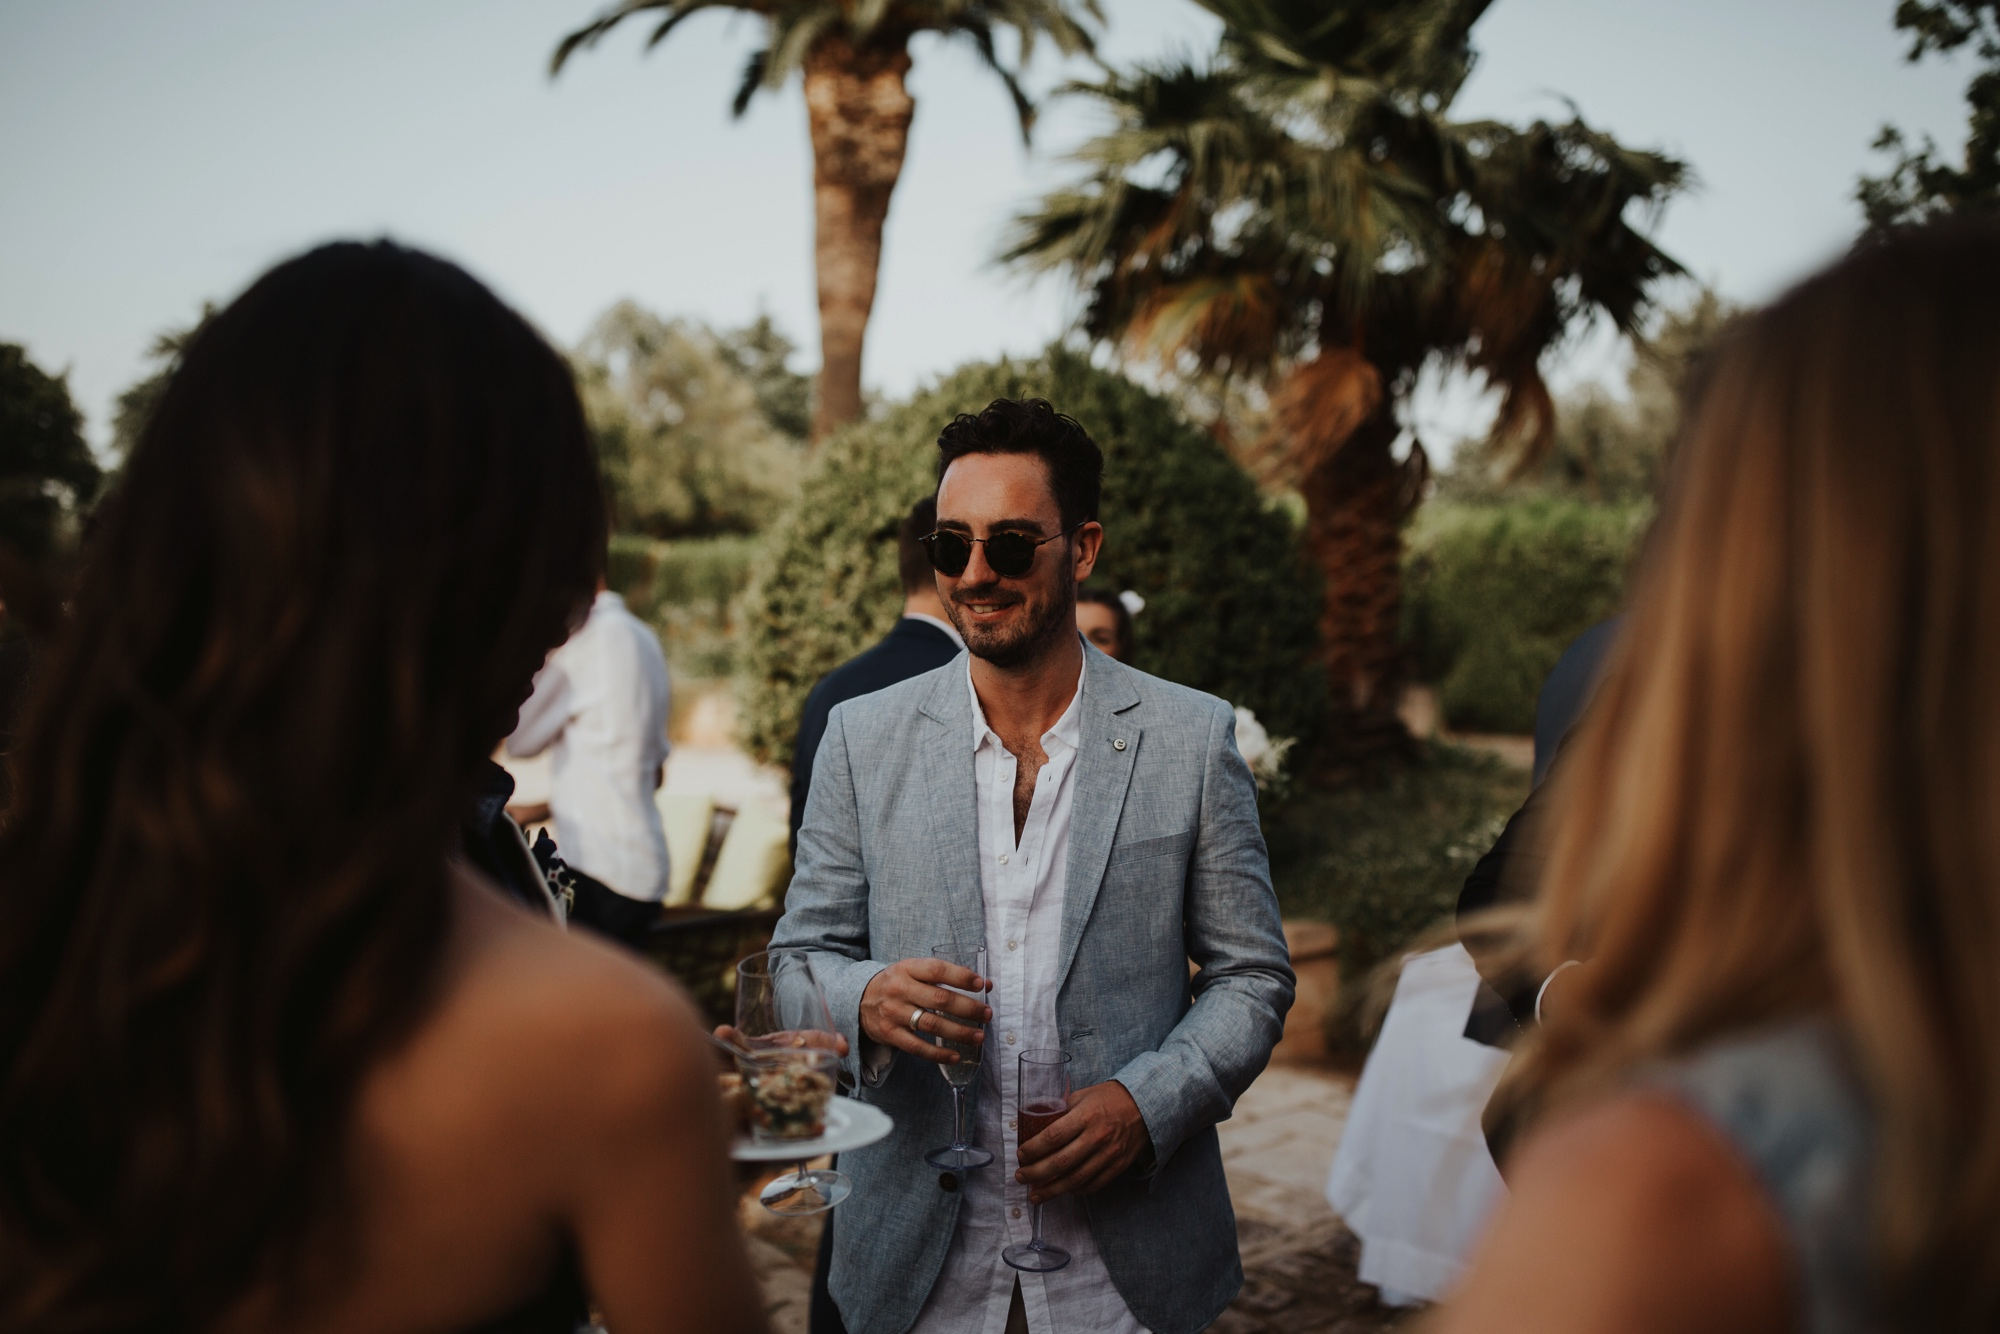 0000000051_Rob and Lucy-508_Weddings_Destination_Italy_got_Just_Engaged.jpg